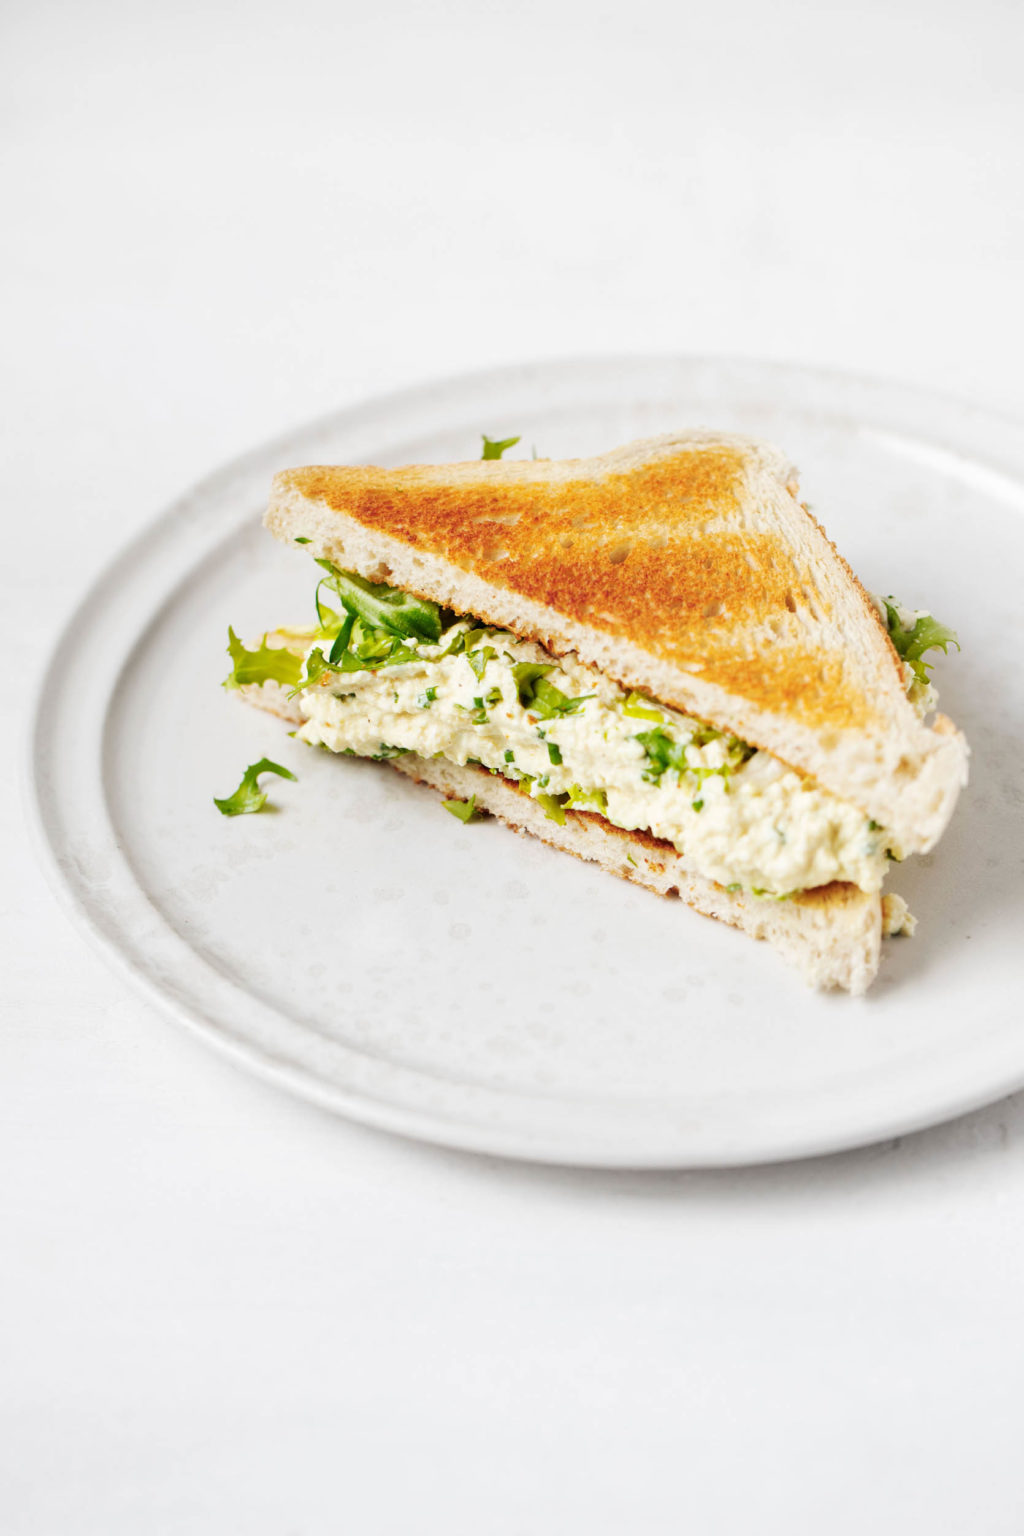 An angle photo of a white plate with half of tofu egg salad sandwich and fresh vegetables on it.